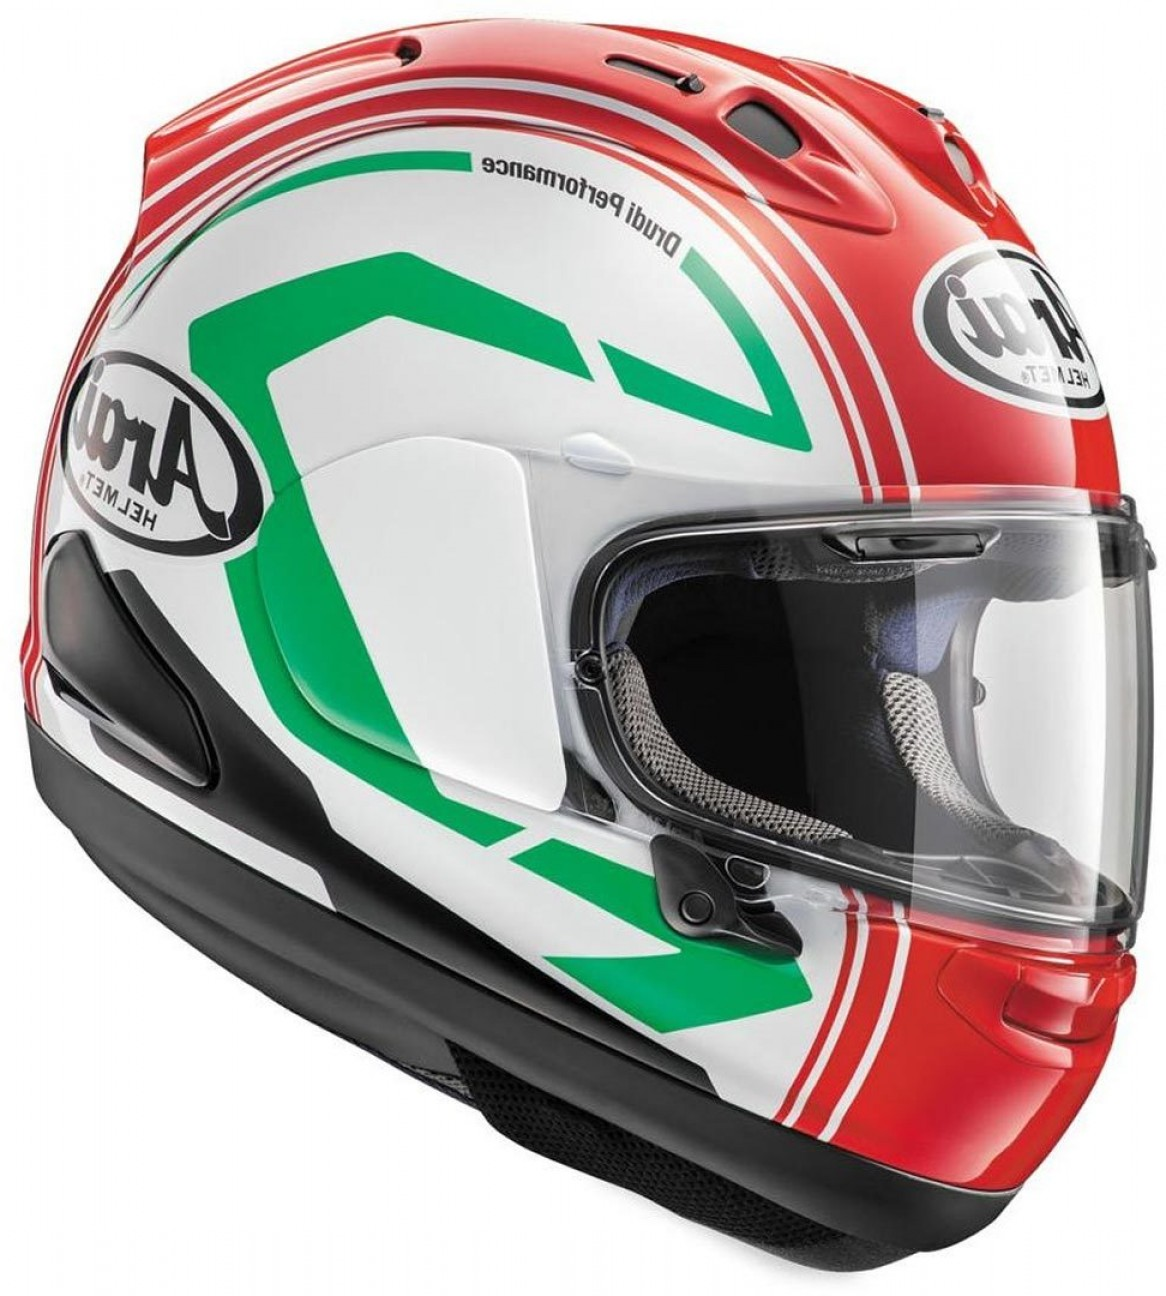 Arai Vector Green White 1: Arai Rx V Statement Helmet Red White Green Gp Arai Pinlockcheap P